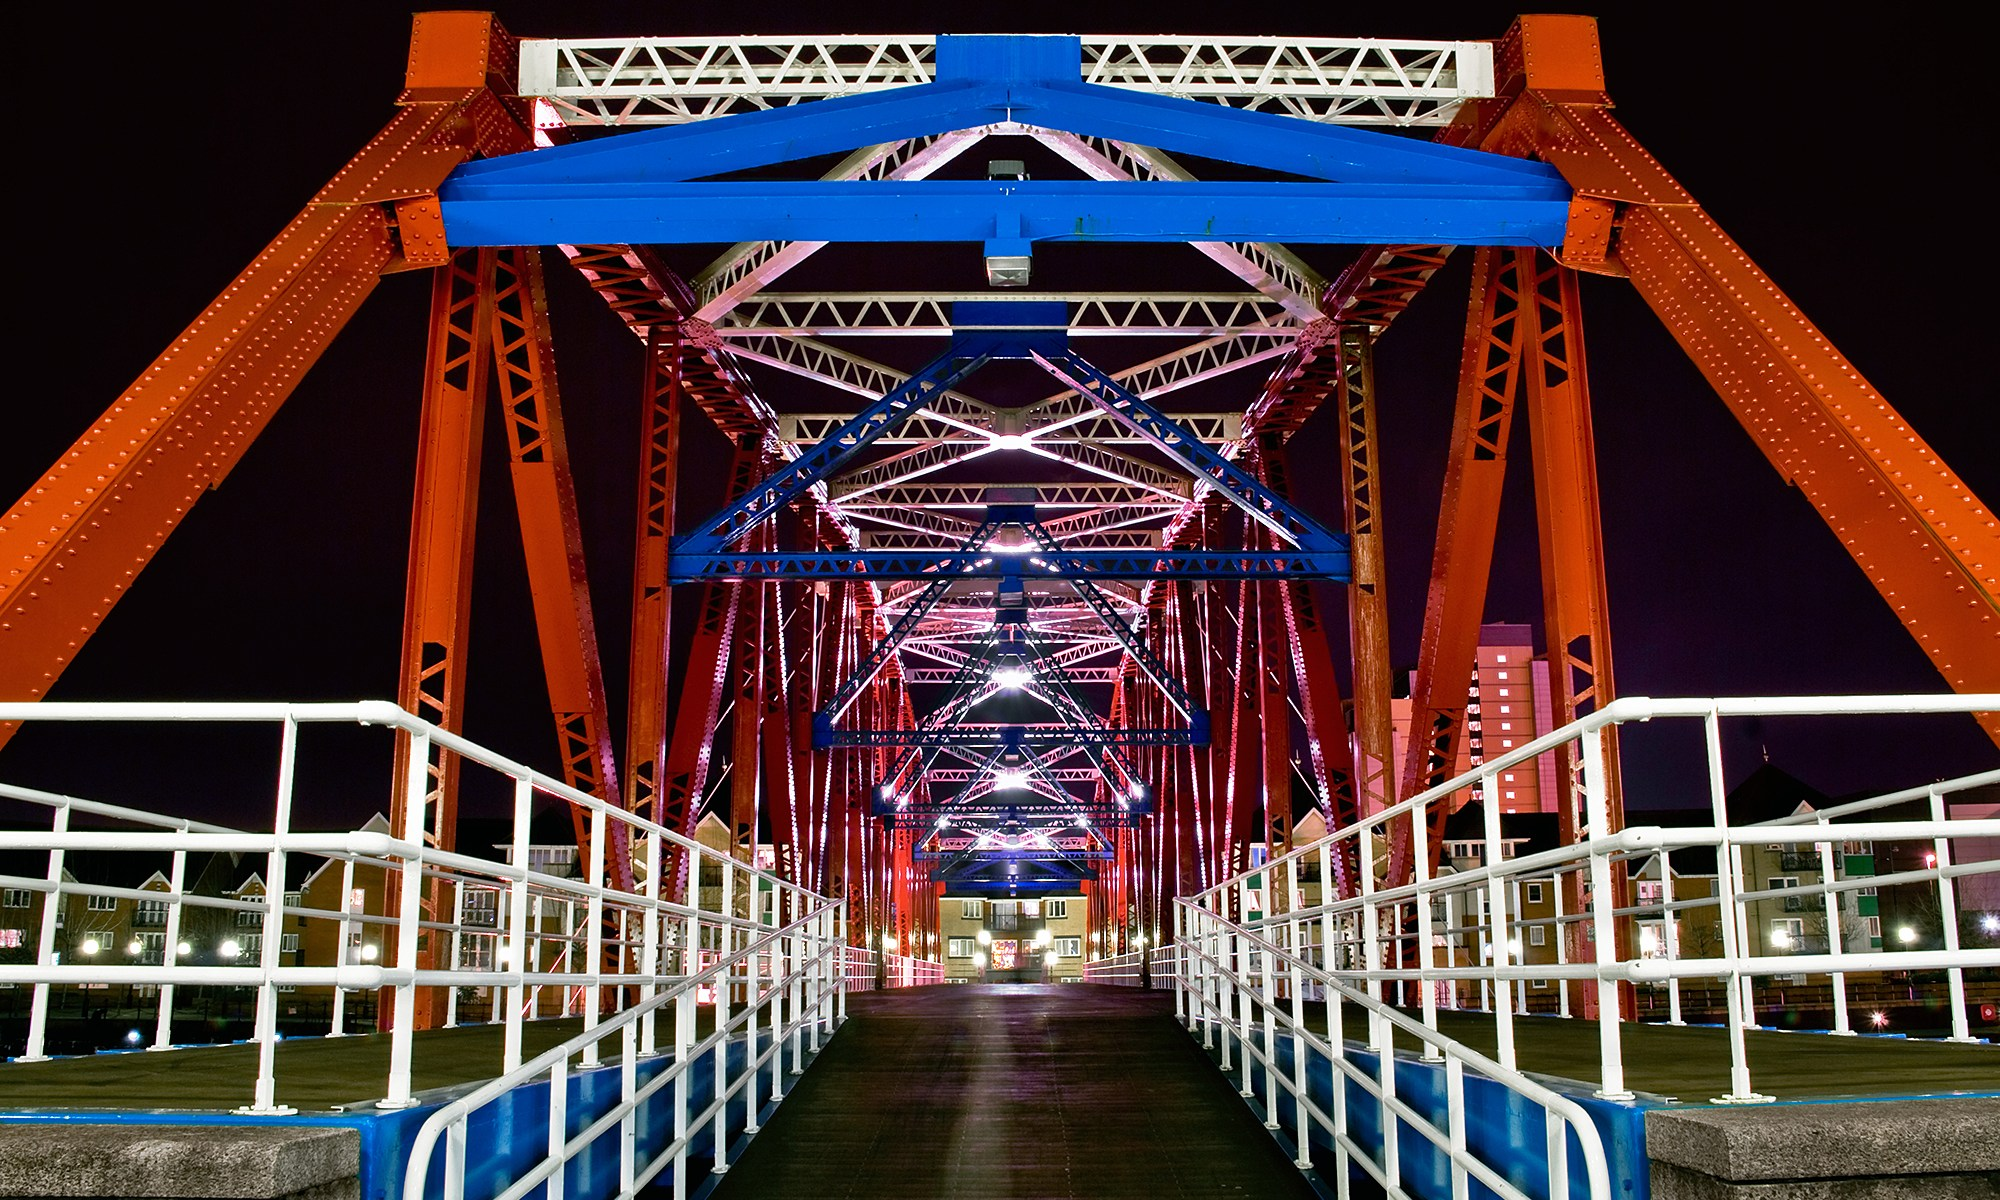 Salford Quay's Detroit Bridge at Night